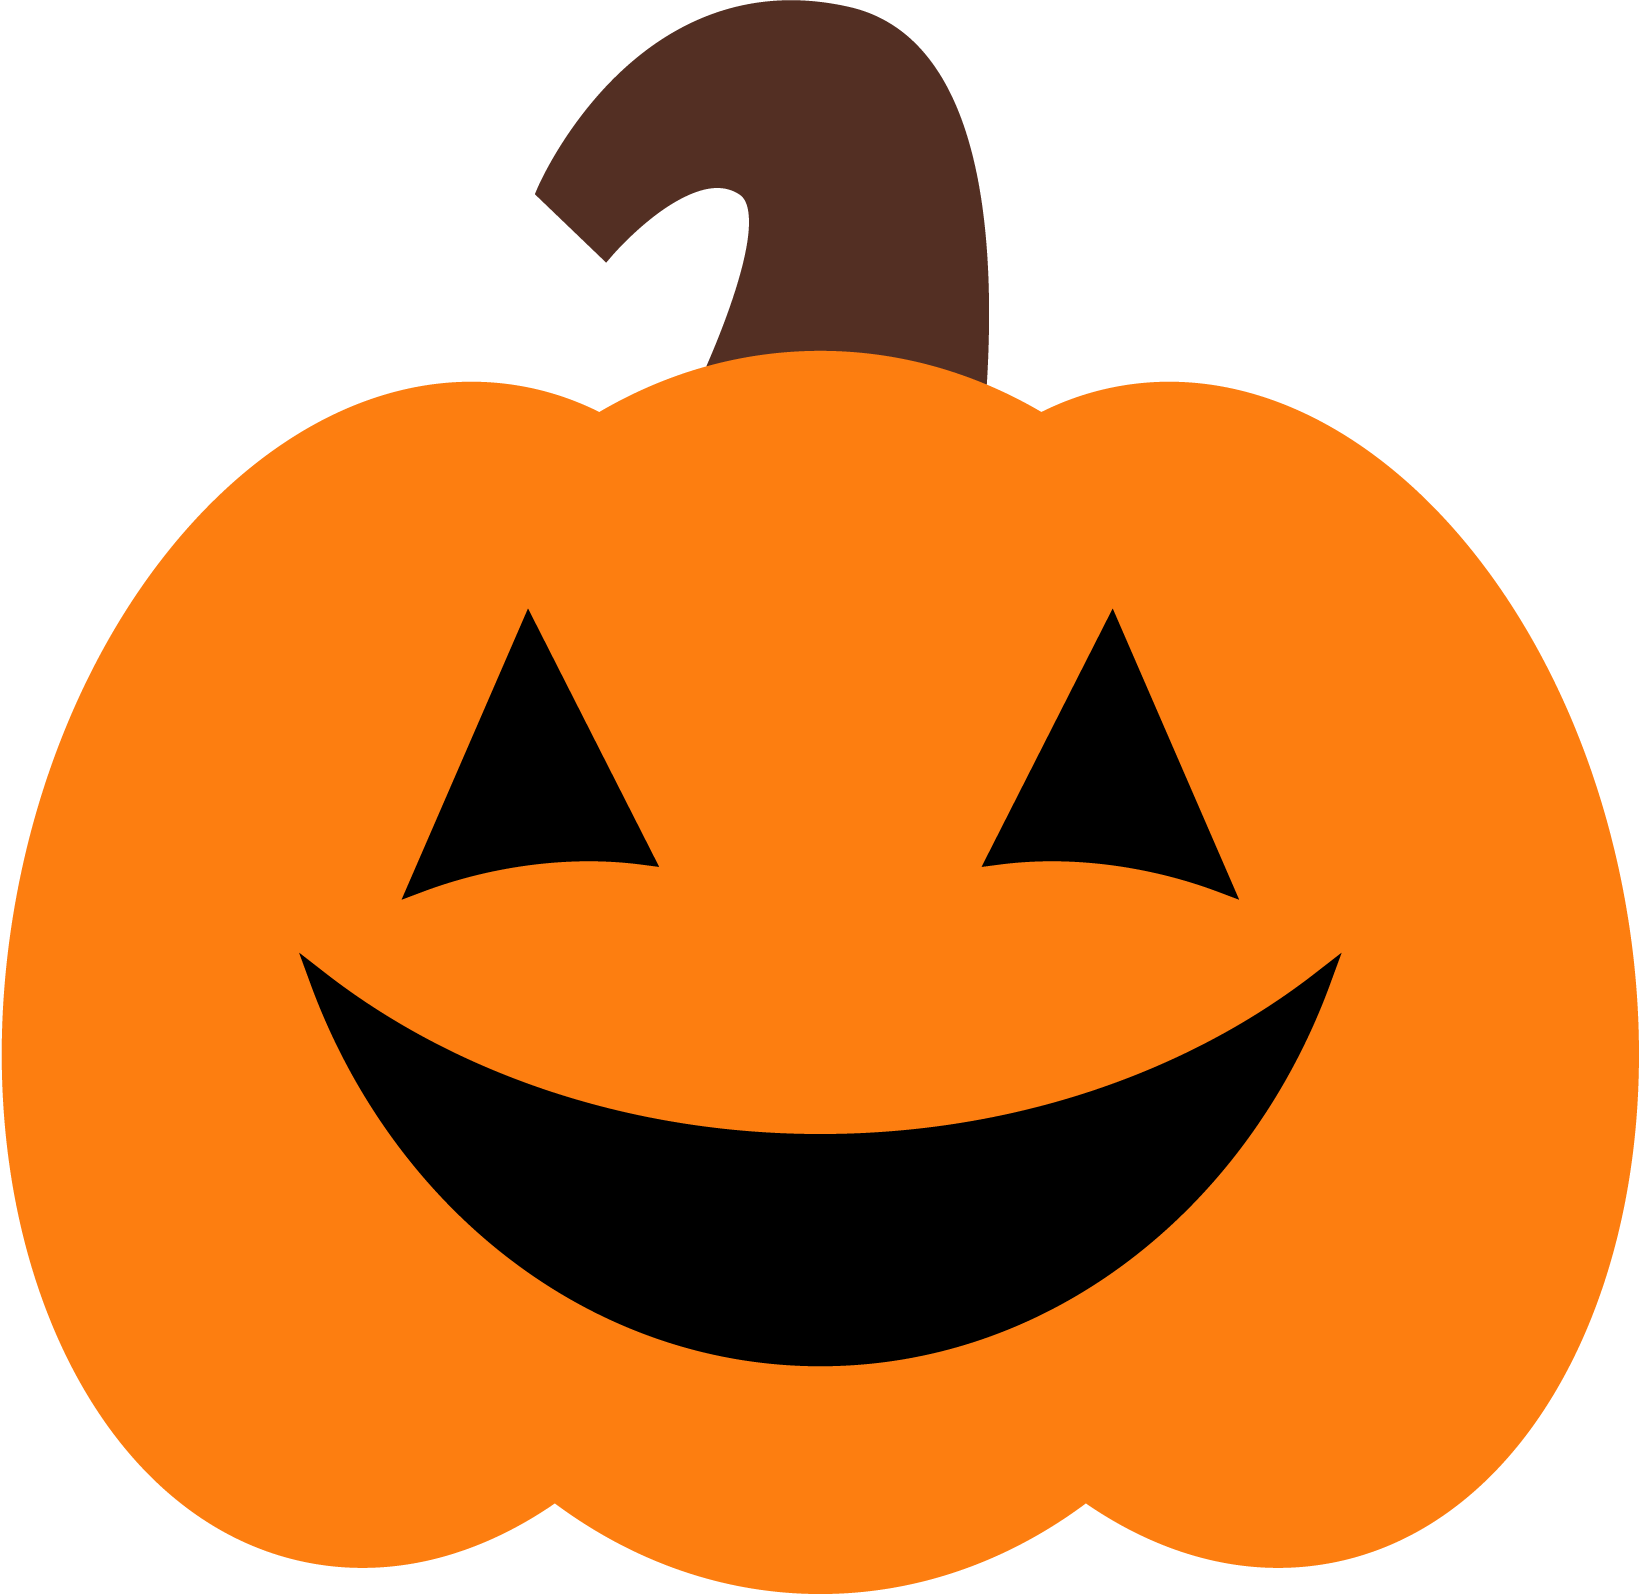 Halloween clipart #6, Download drawings